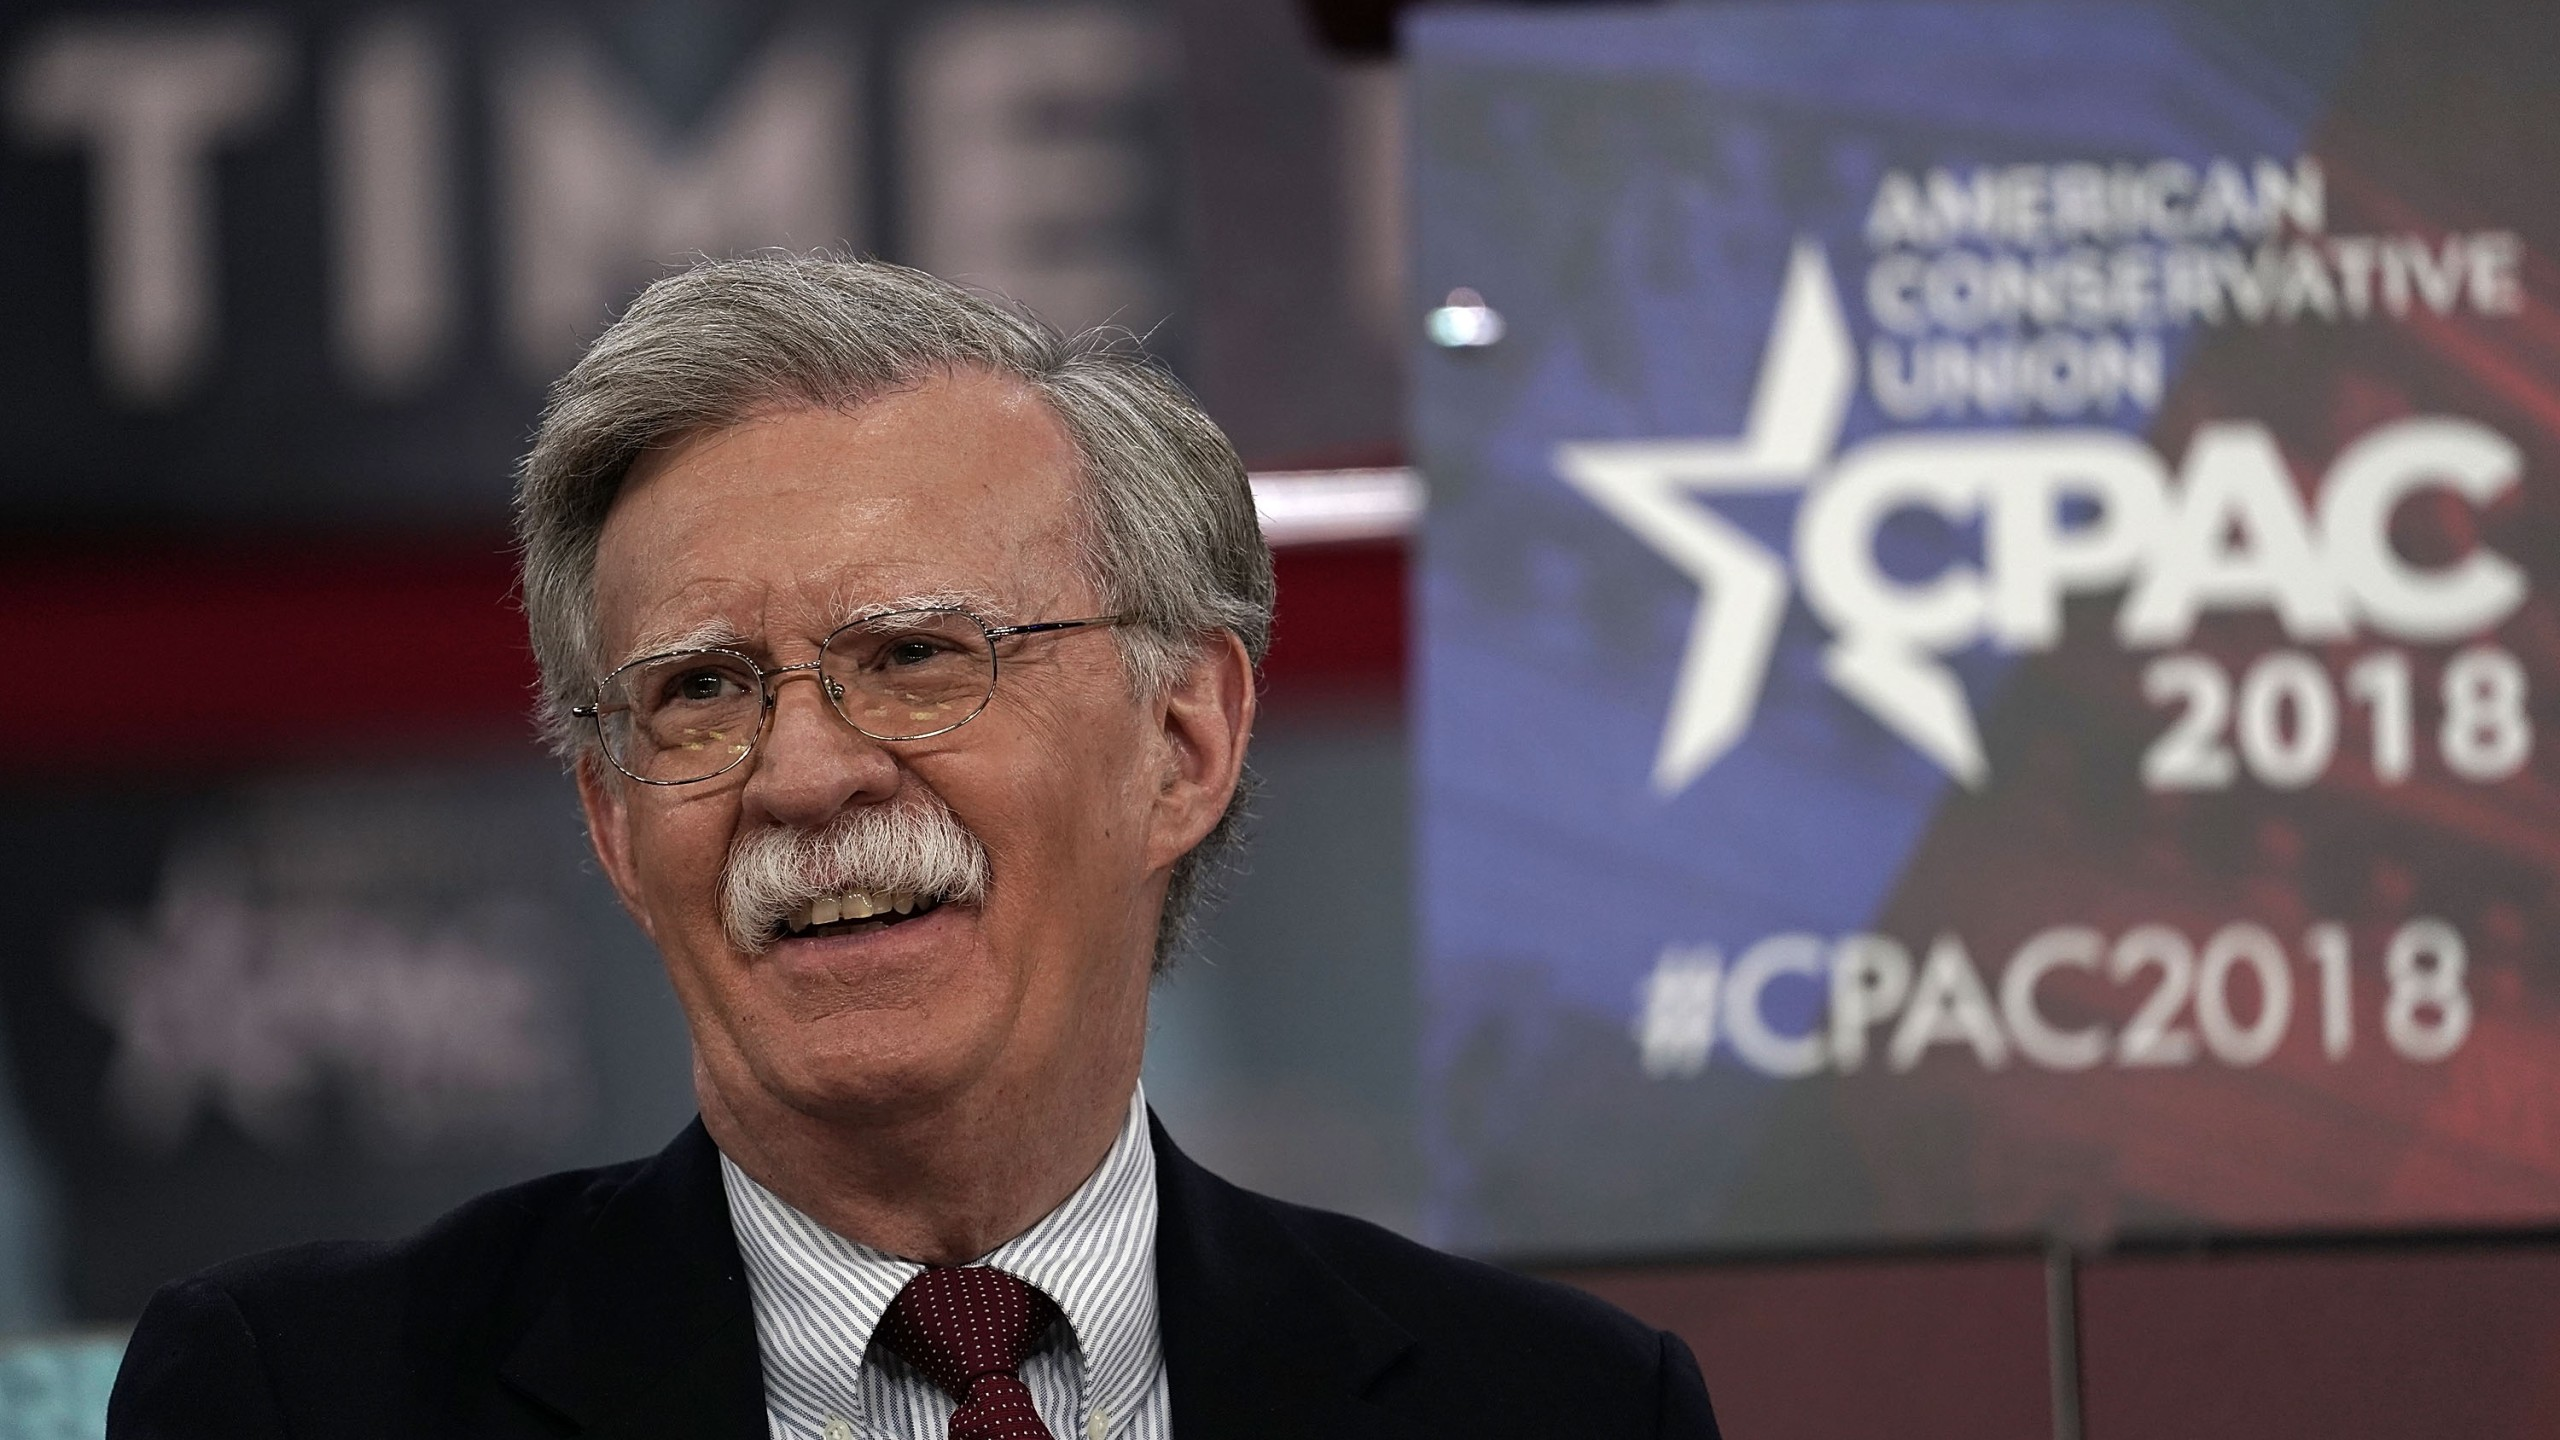 Former U.S. Ambassador to the United Nations John Bolton speaks during CPAC 2018 Feb. 22, 2018, in National Harbor, Maryland. The American Conservative Union hosted its annual Conservative Political Action Conference to discuss conservative agenda. (Credit: Alex Wong/Getty Images)